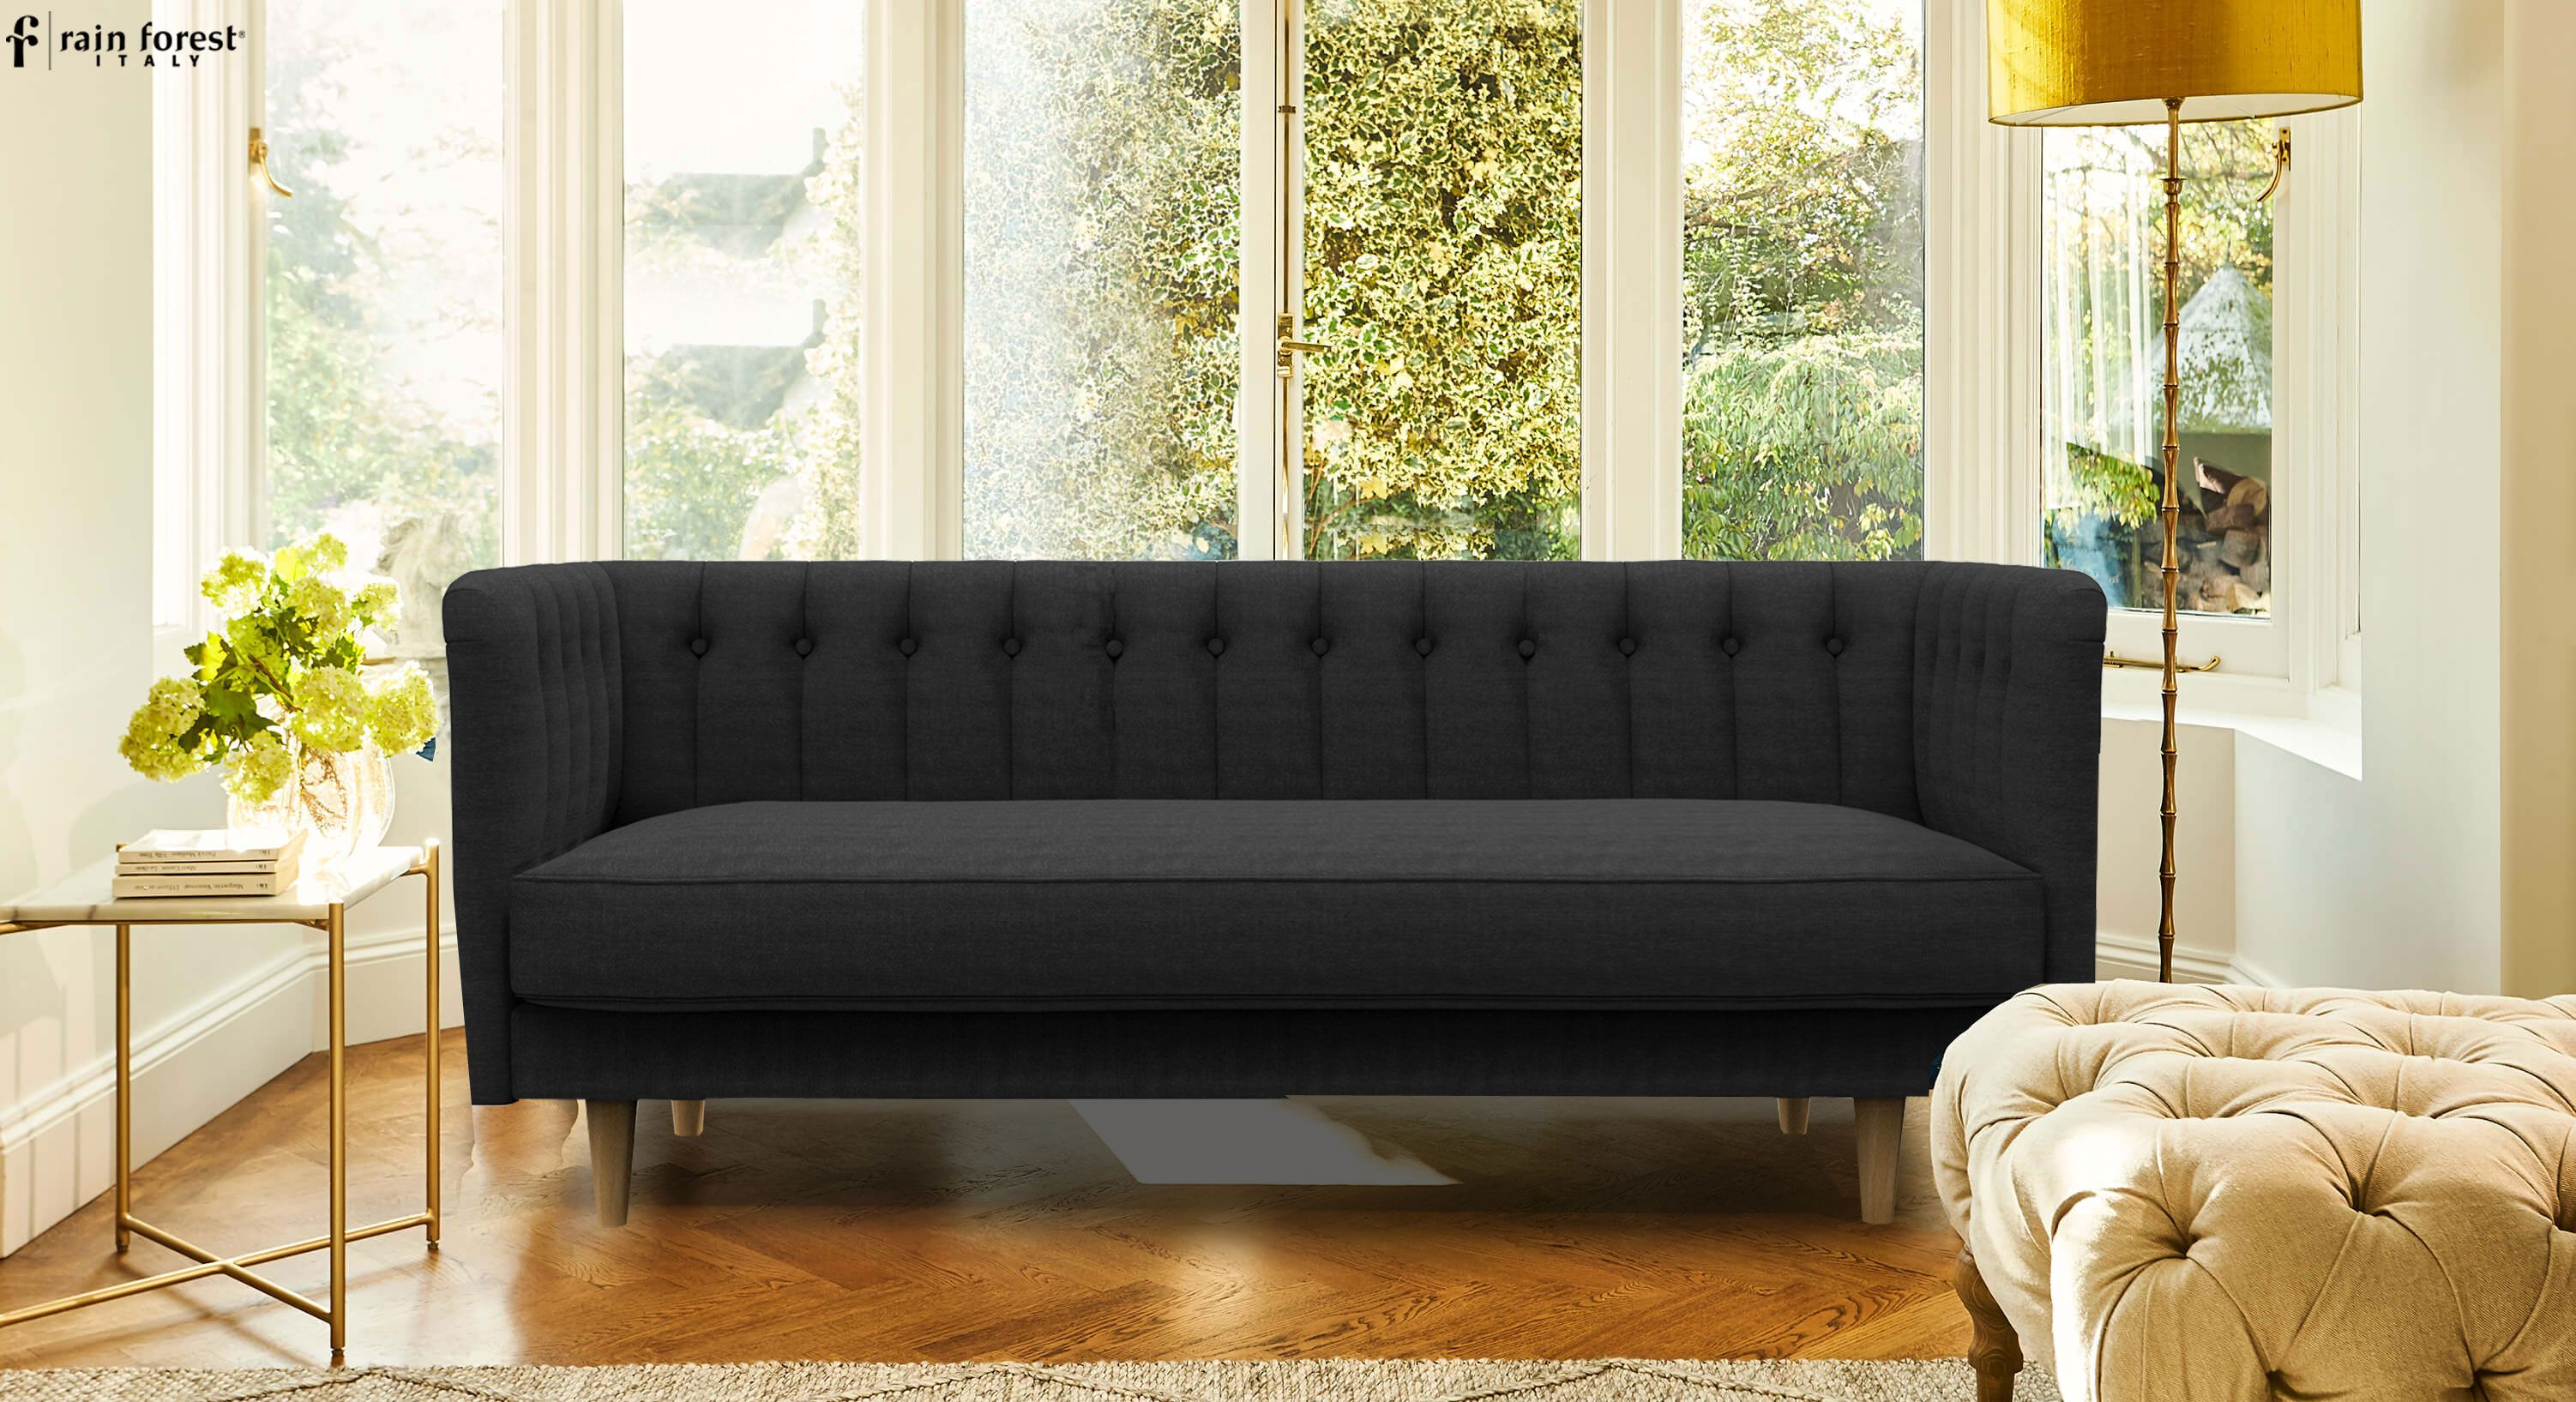 Sofa Sofa Designs Sofa Design Sofa Ideas Sofa Set For Home 3